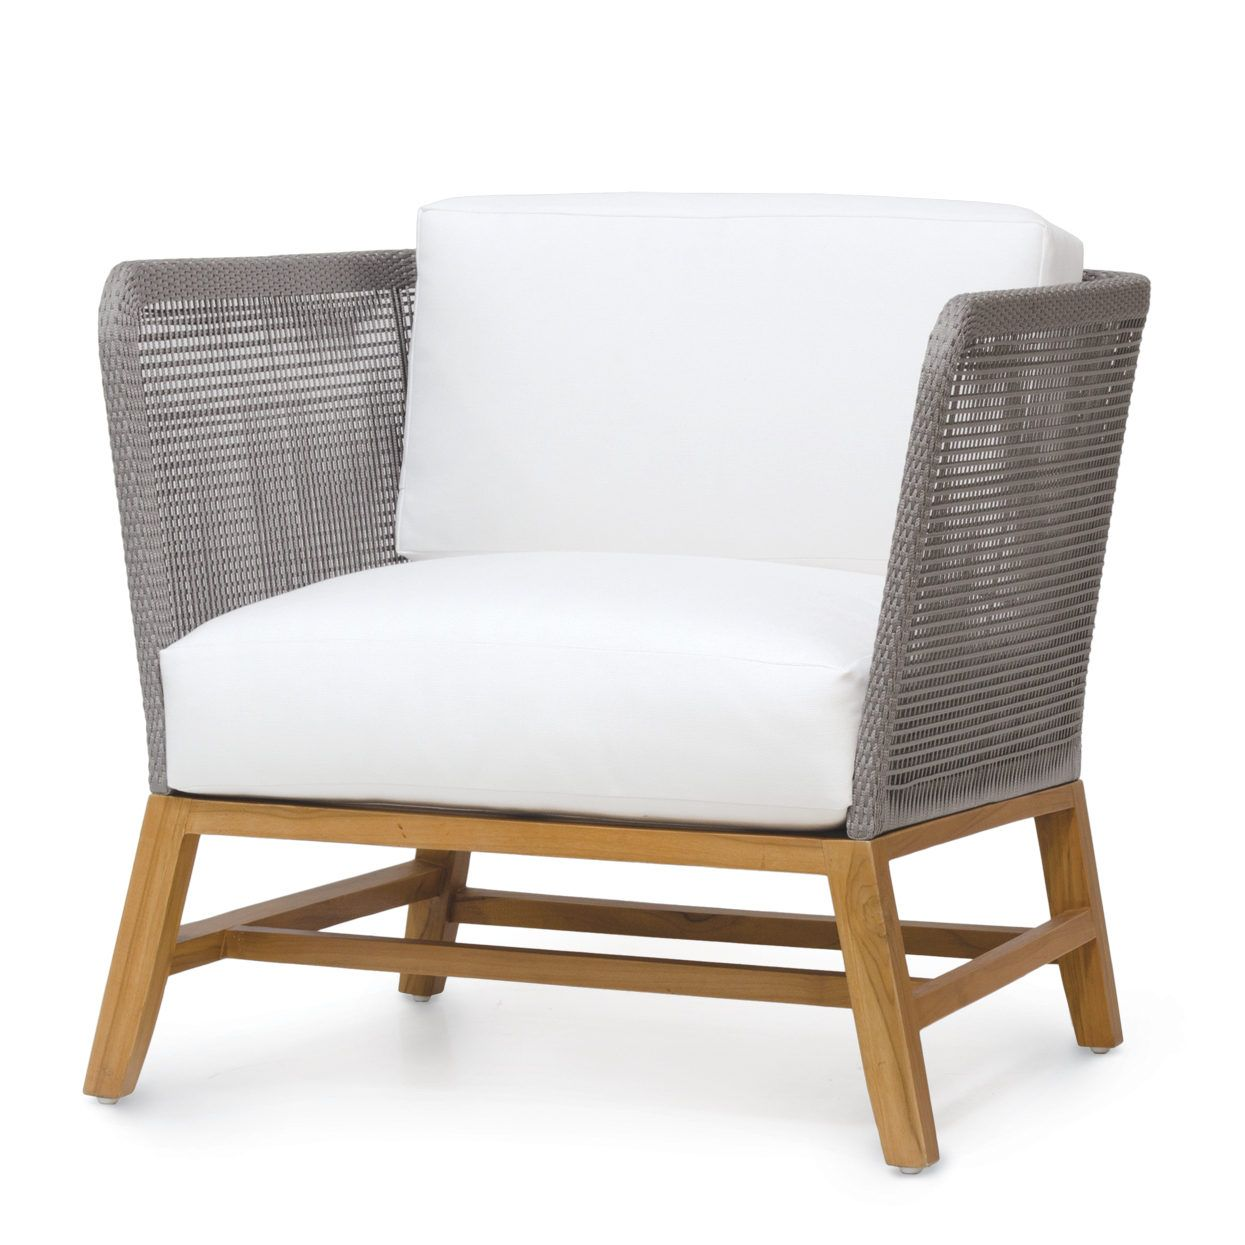 Outdoor wooden lounge chairs - Avila Outdoor Lounge Chair